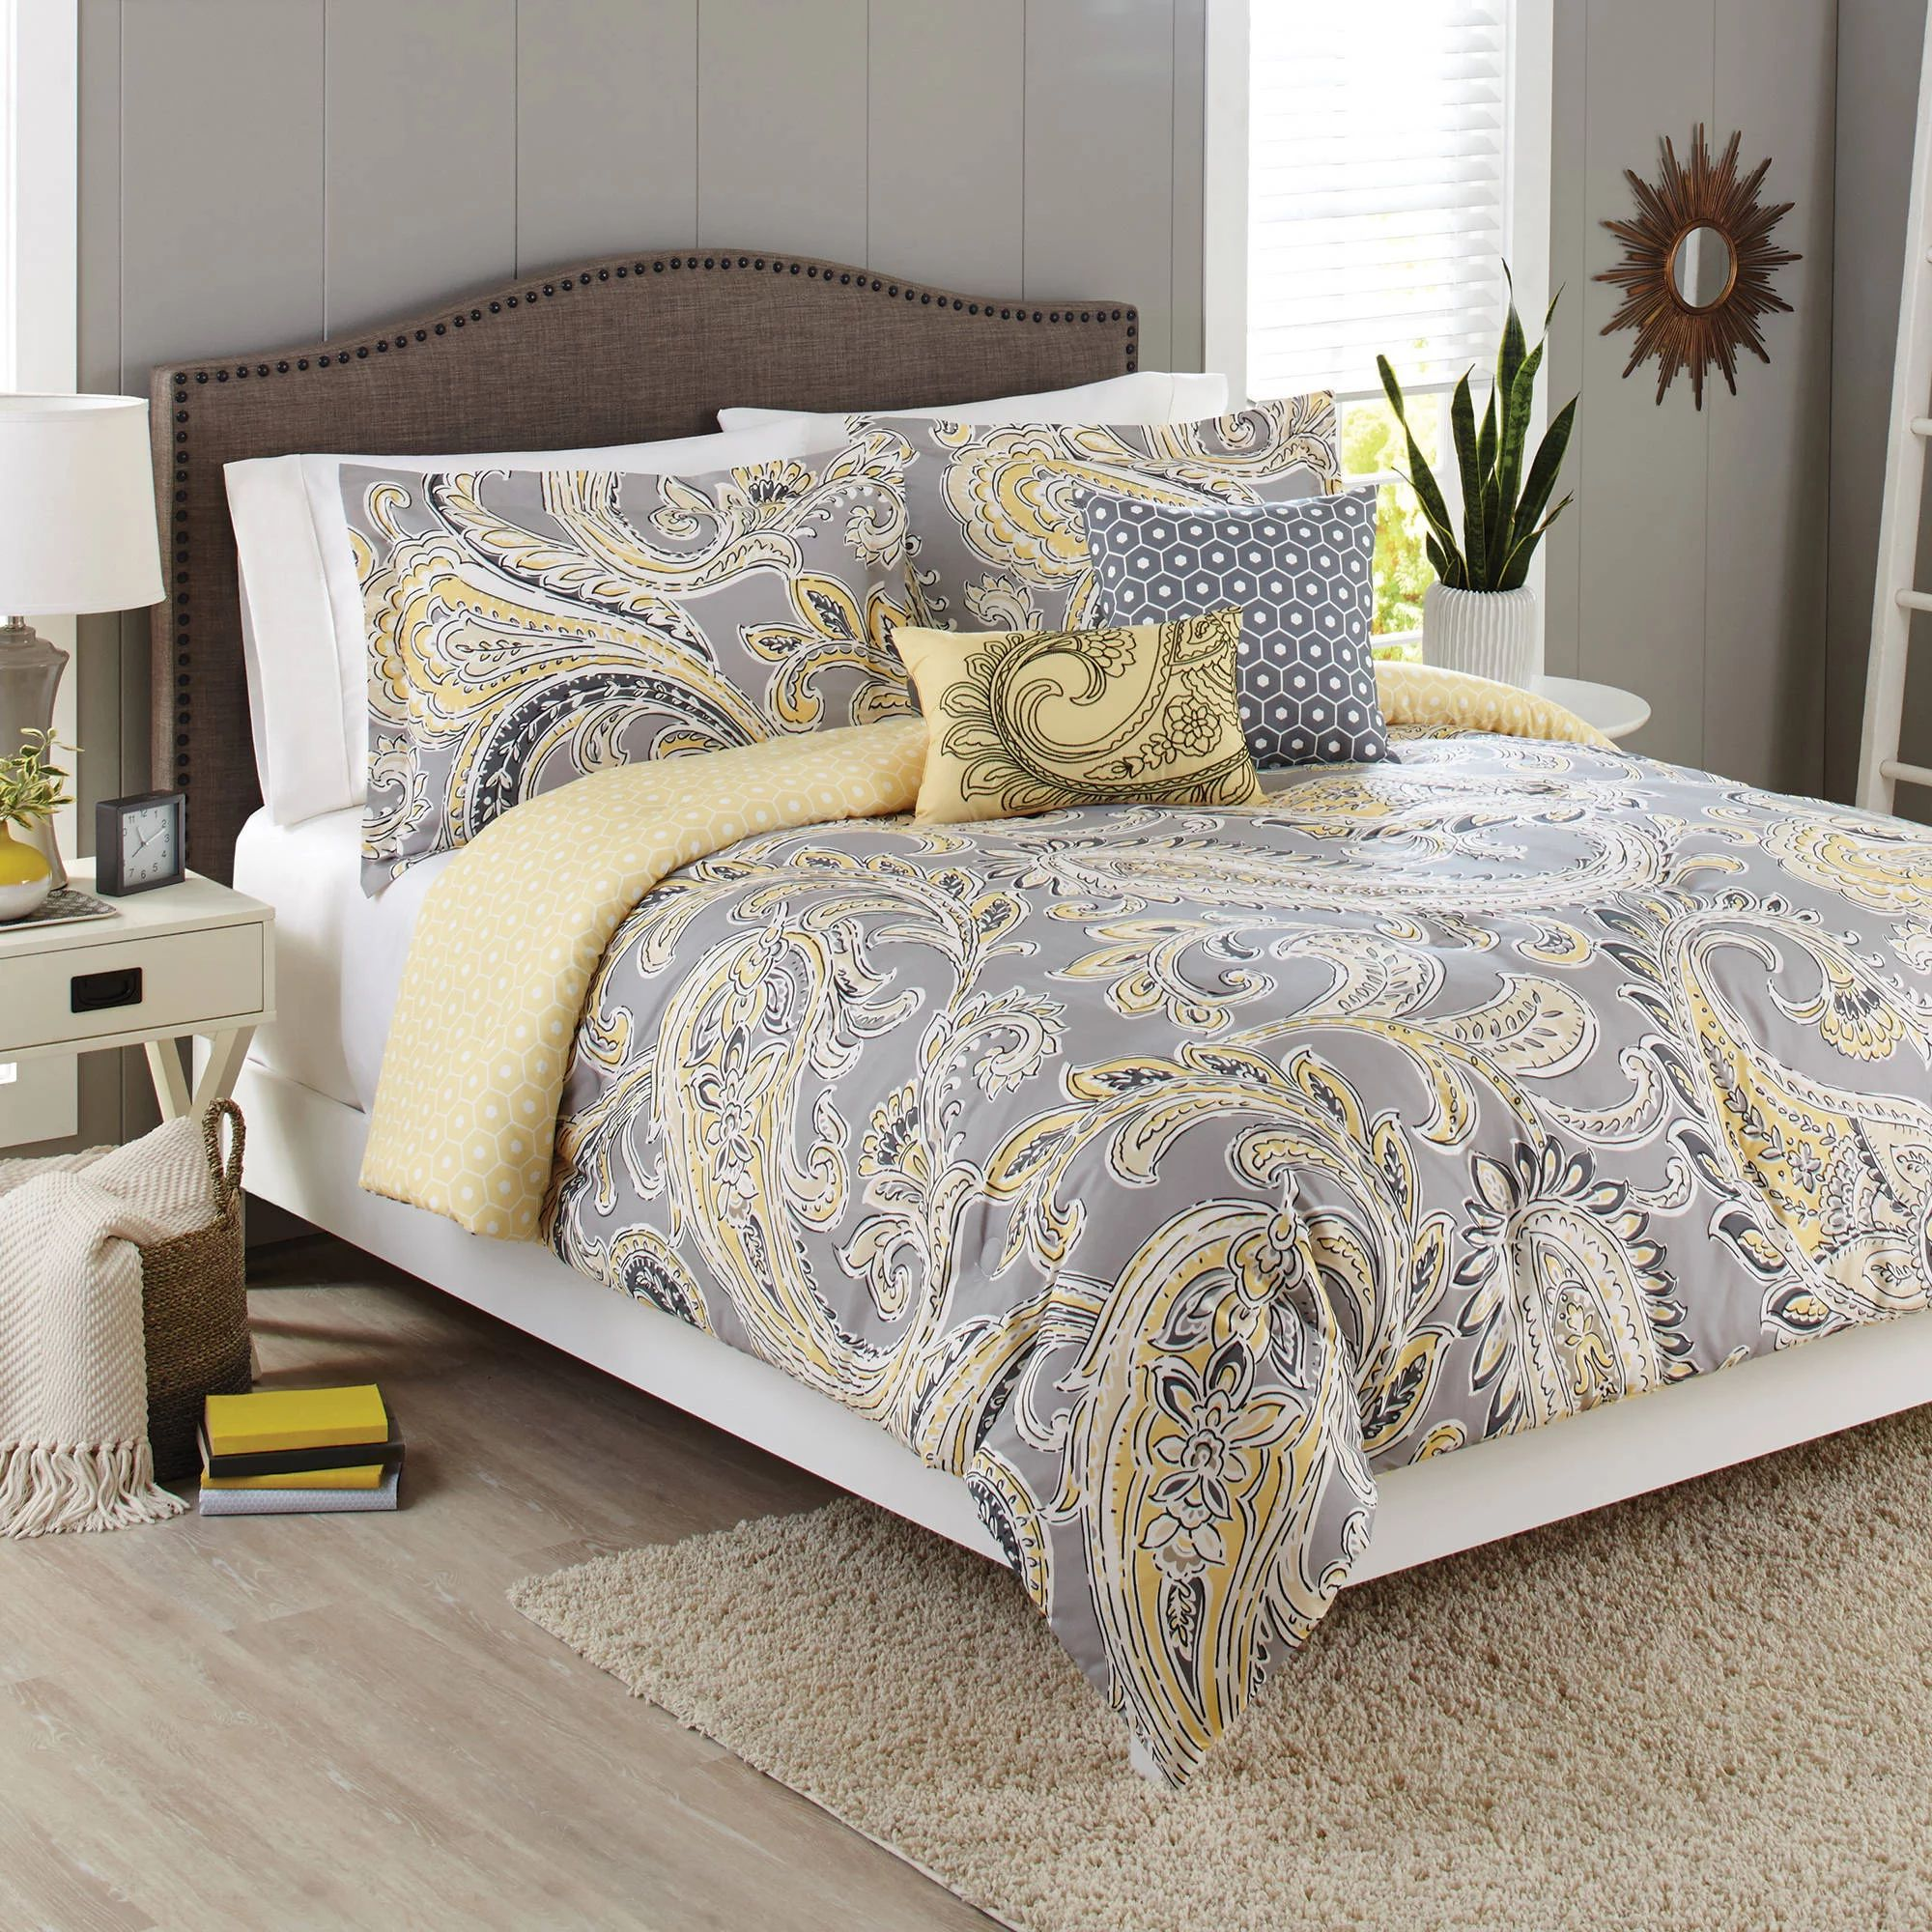 Traditions by waverly paddock shawl 6 piece bedding comforter set porcelain walmart com